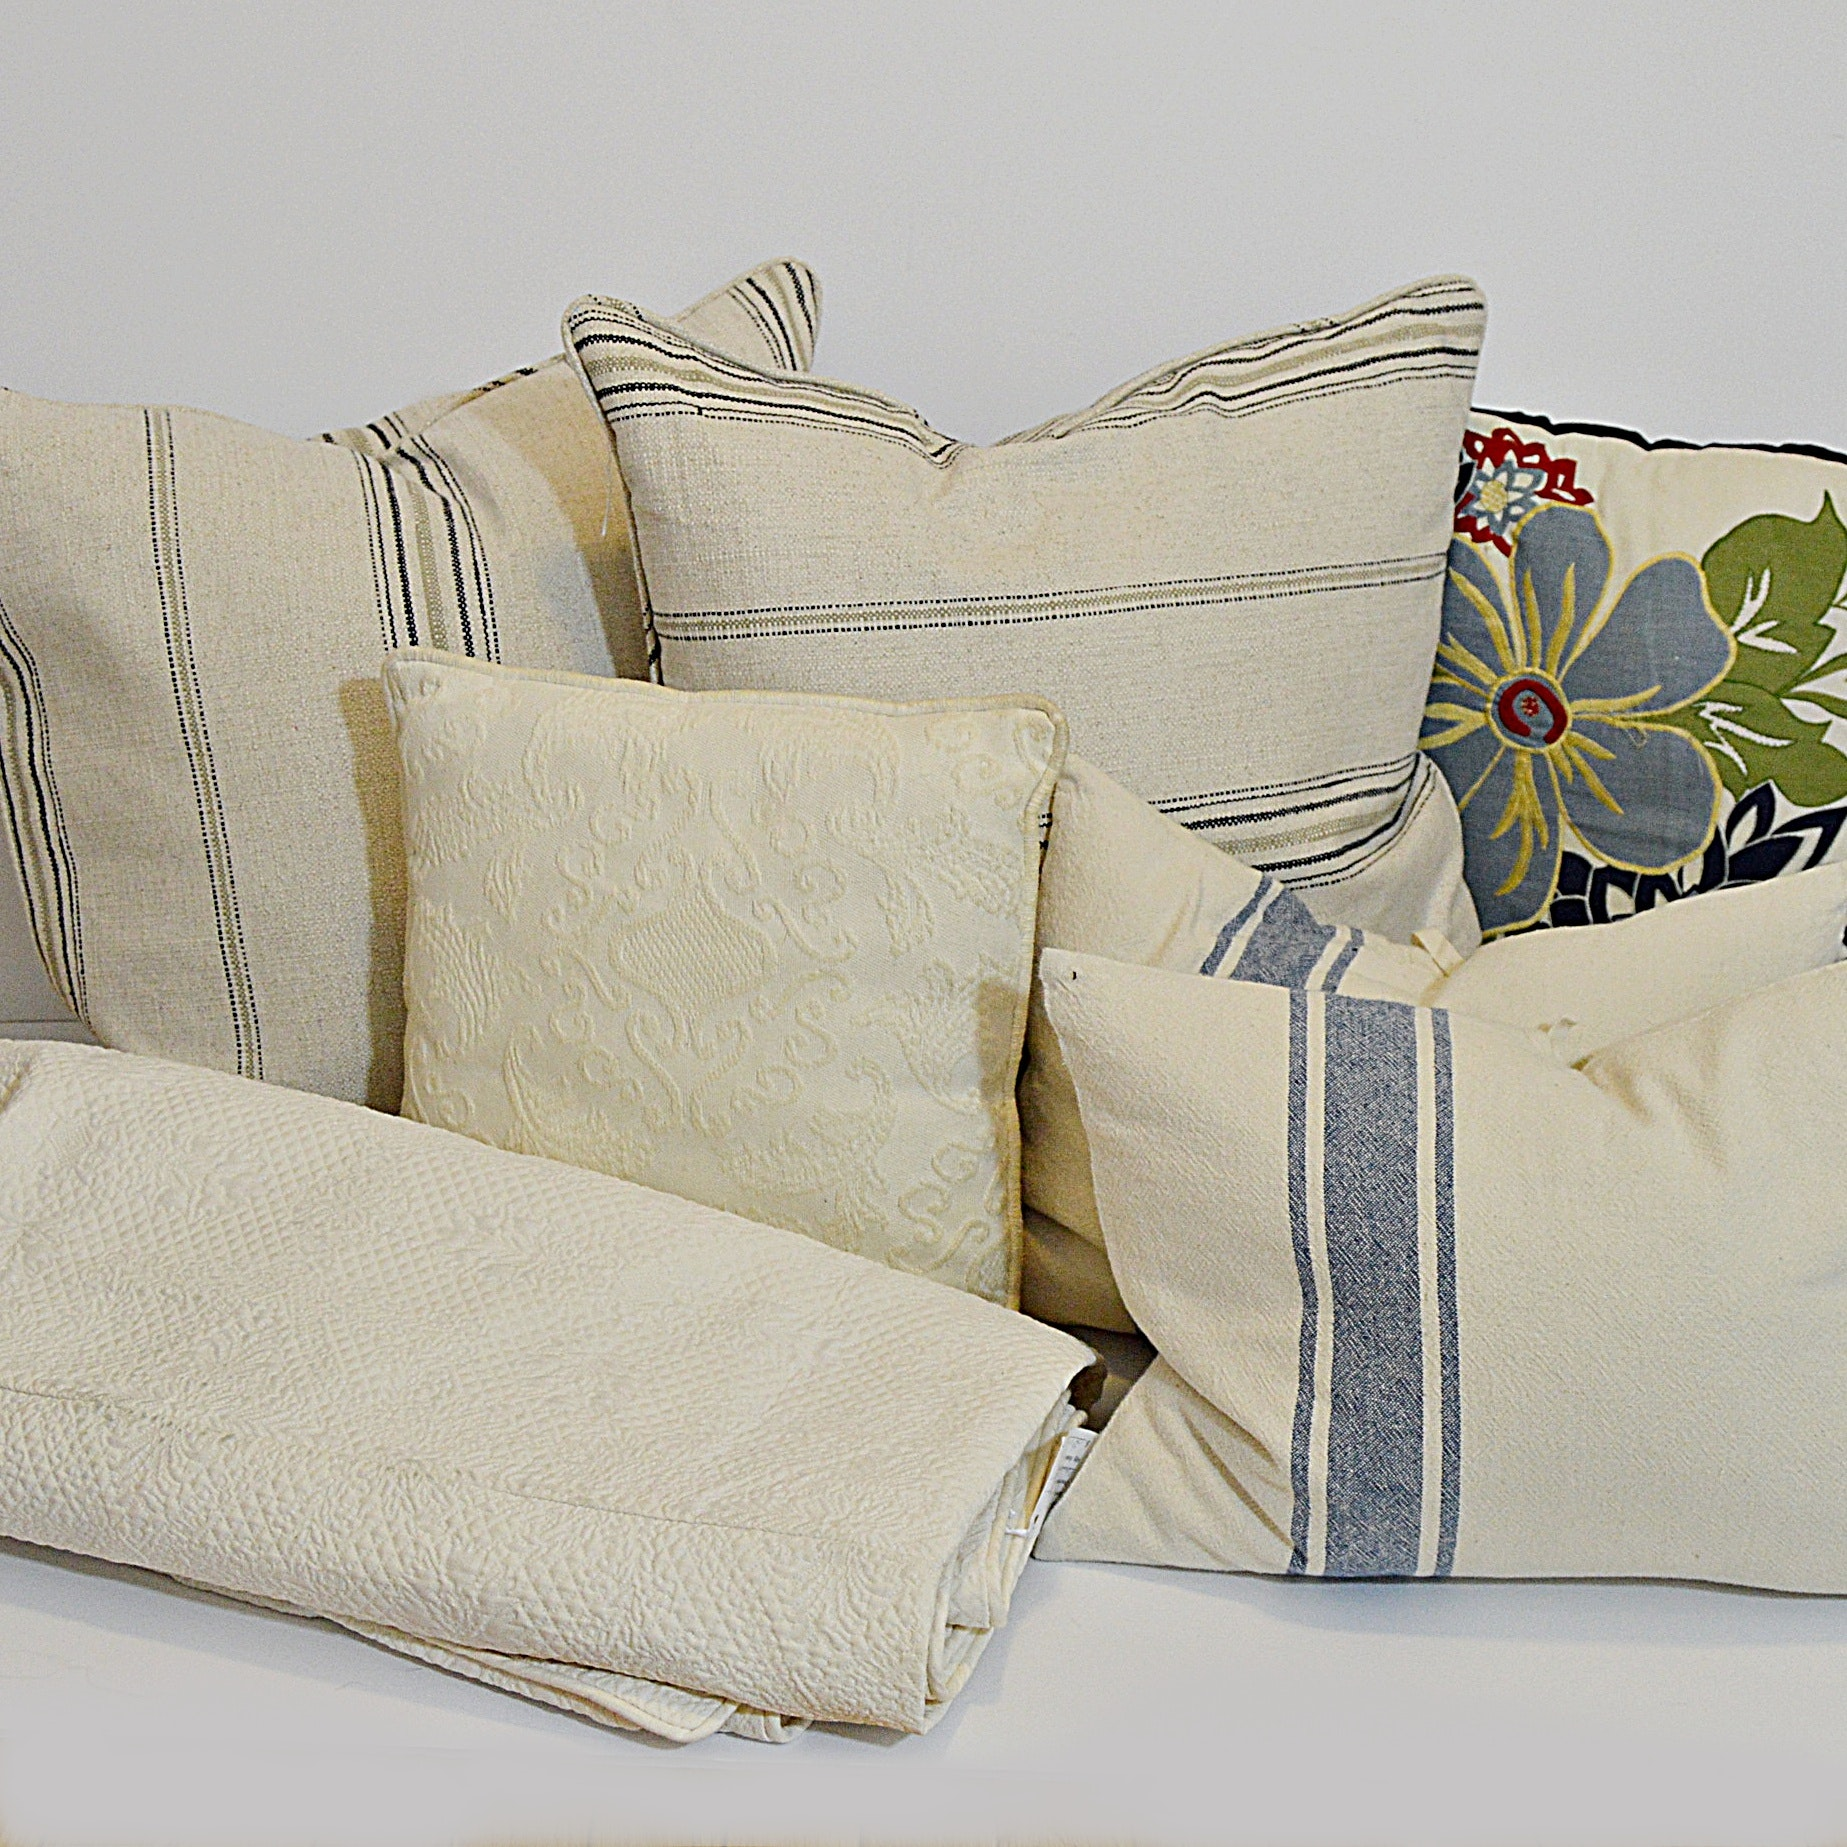 Natural Linen Pillows, Queen Matelassé Coverlet